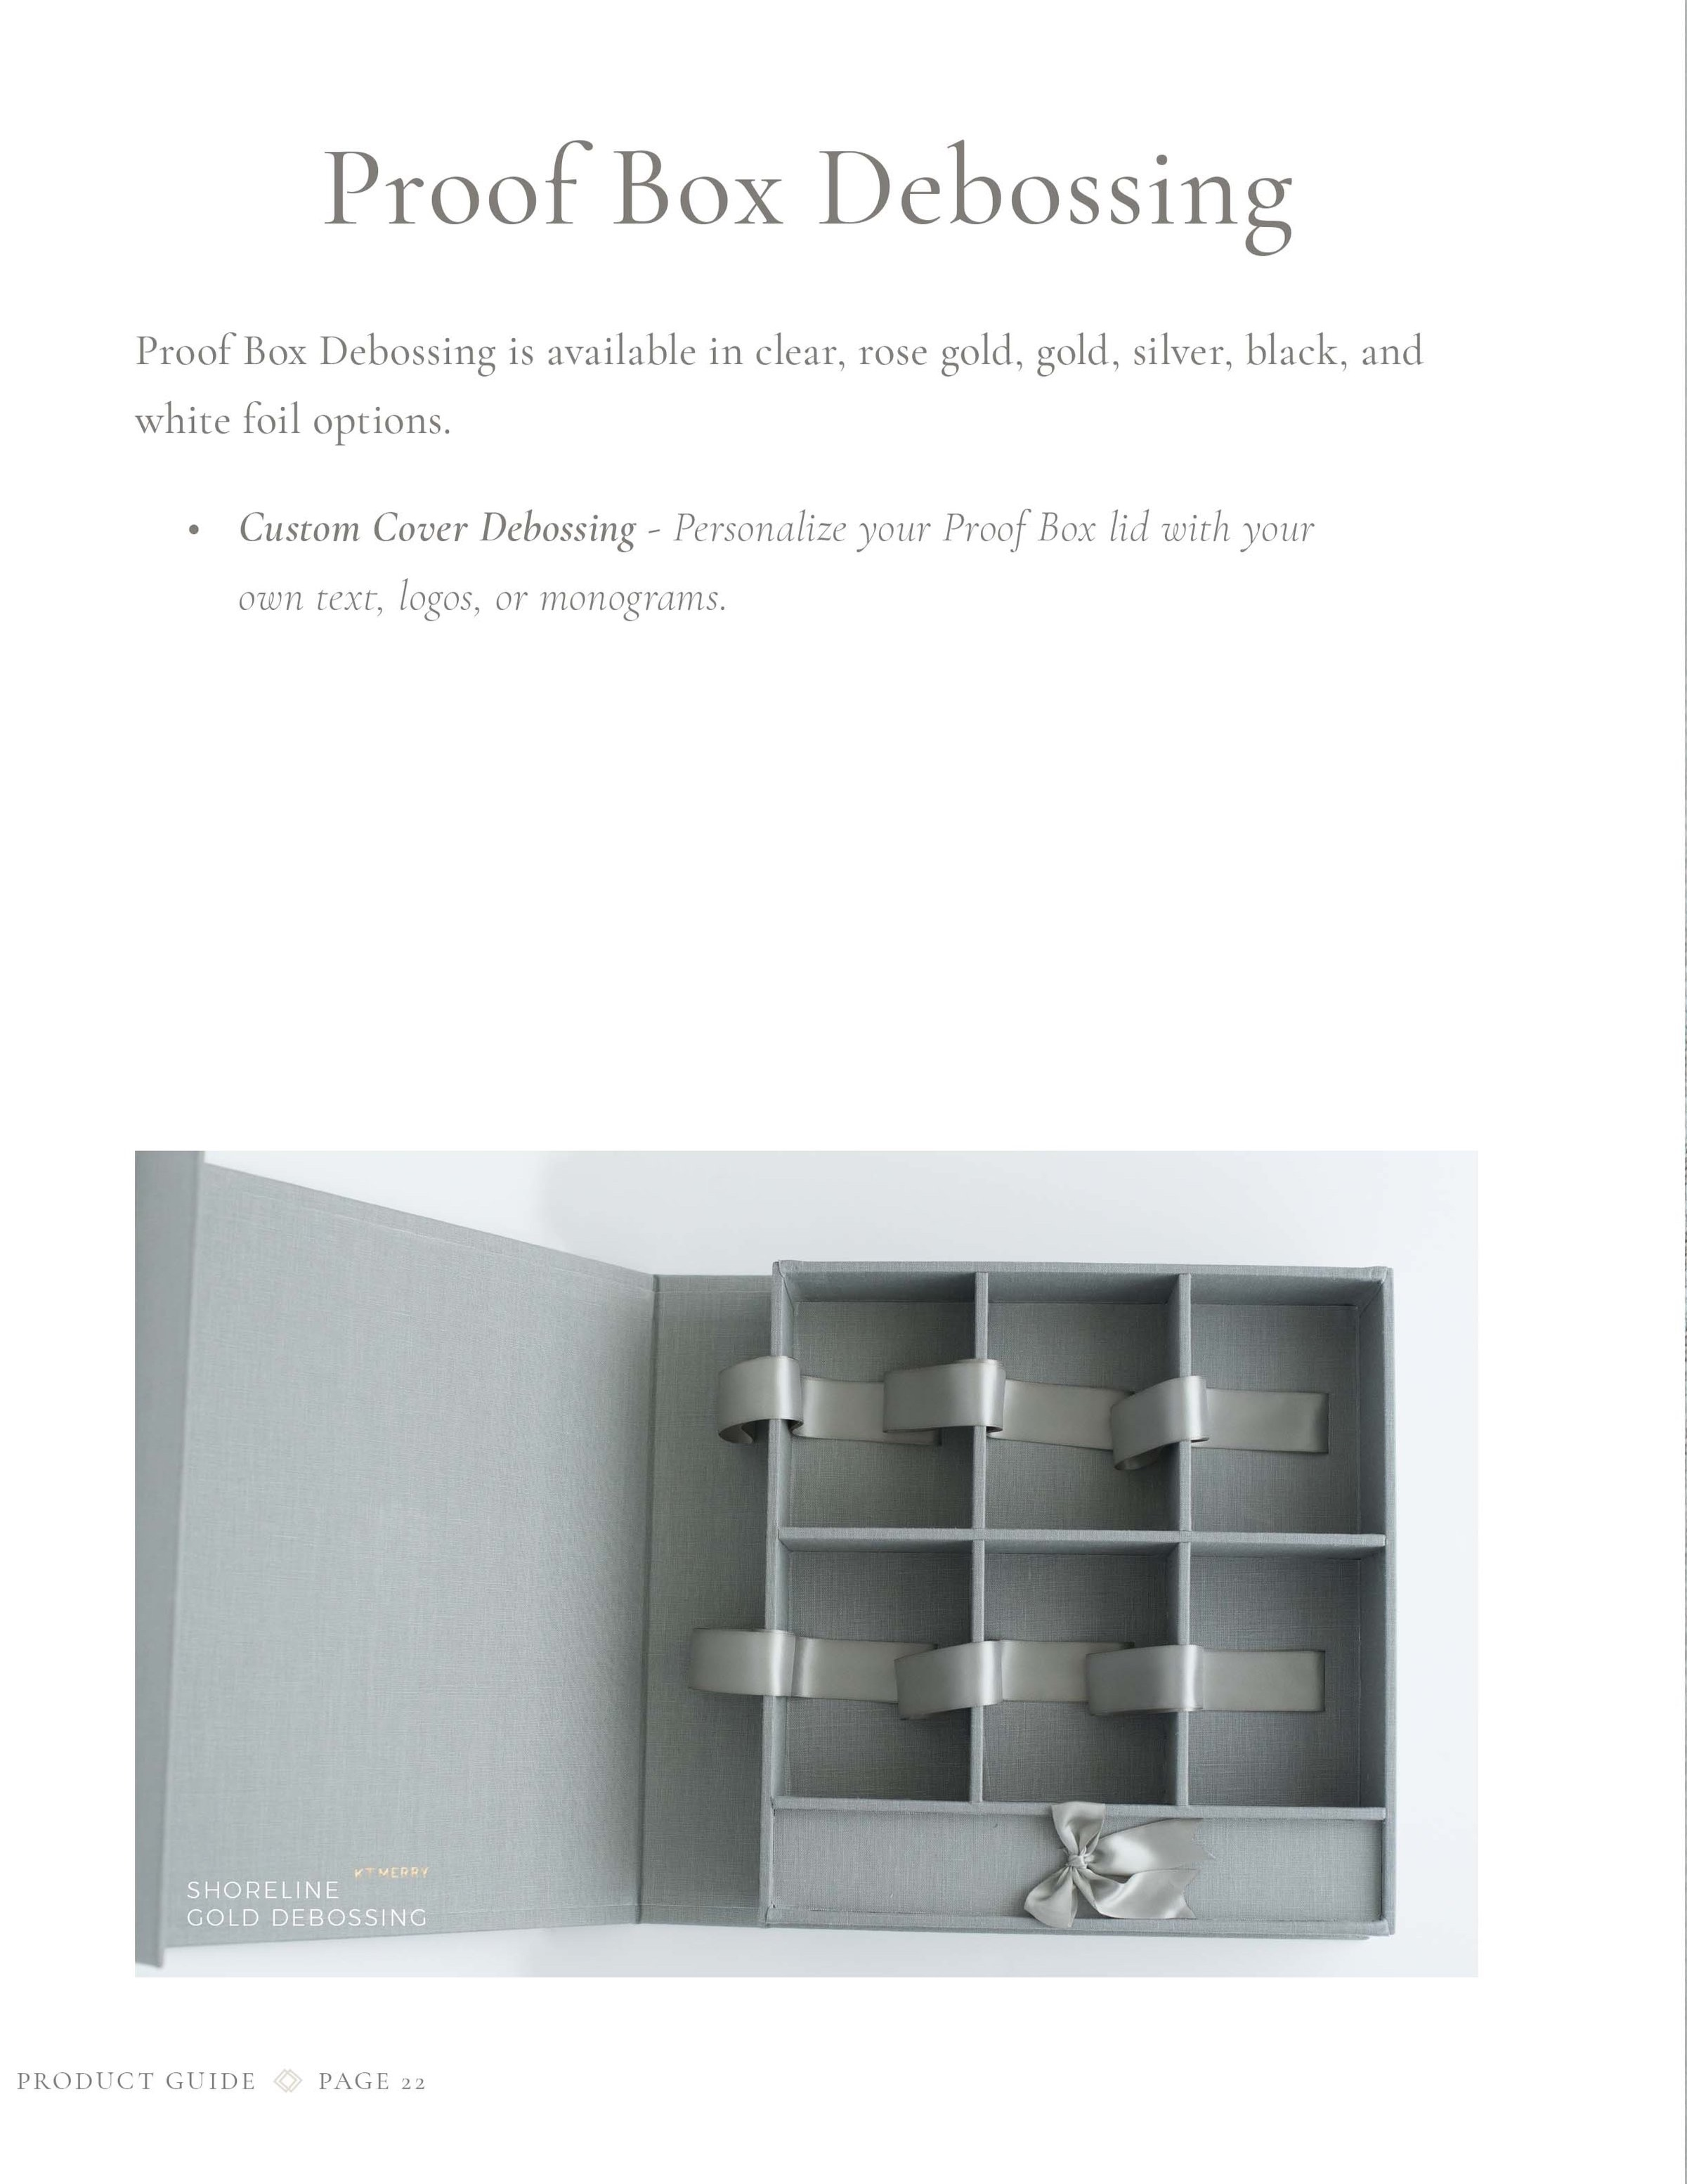 Product Guide-Albums & Proof Boxes -12.jpg